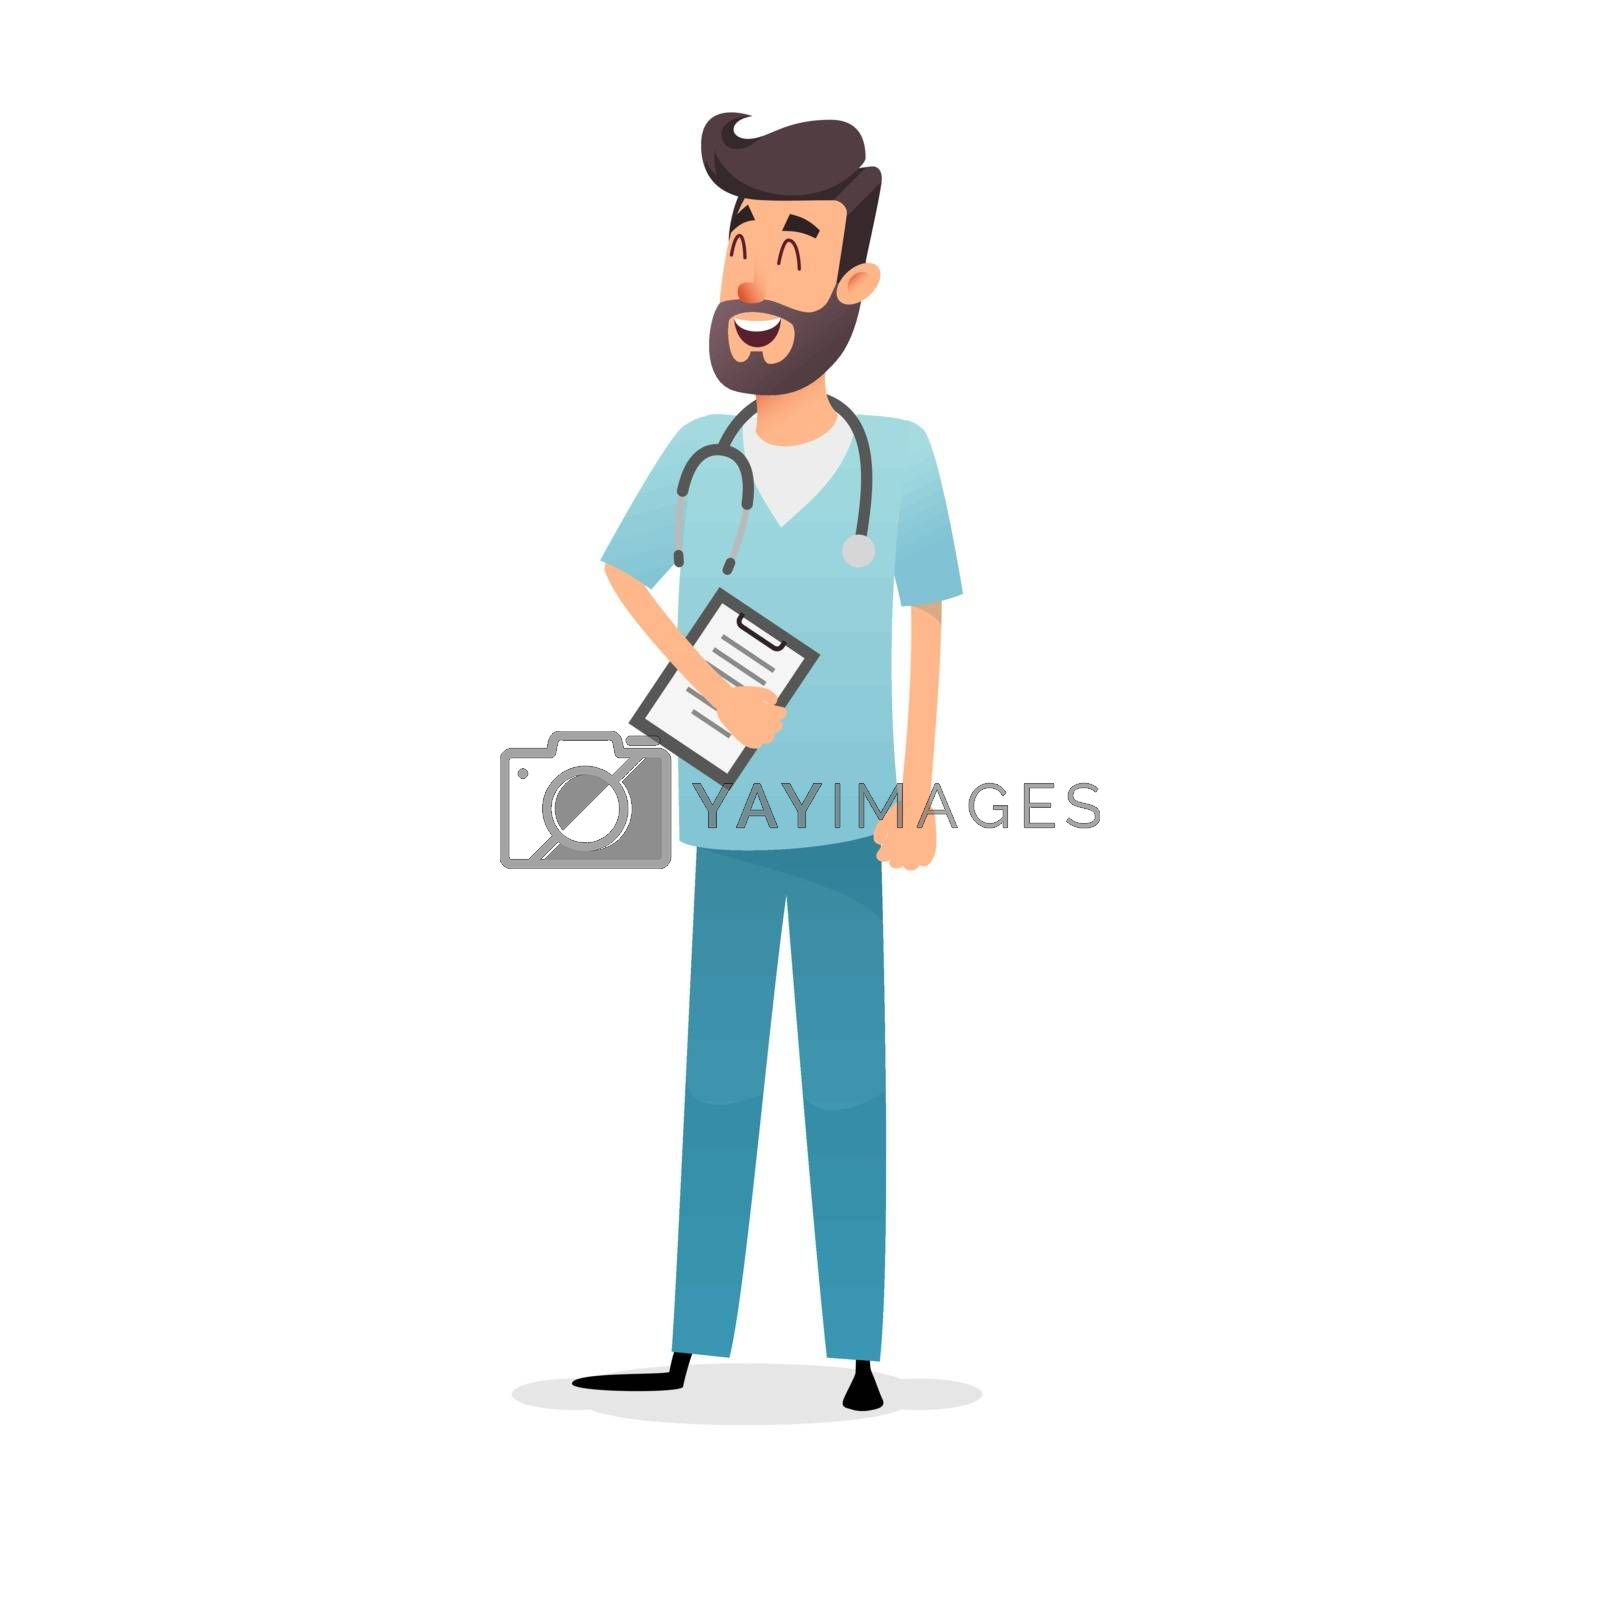 Friendly cartoon physician with stethoscope and diagnosis. Happy doctor cardiologist, pediatrician or pharmacist. Professional medic in blue uniform. Medical concept for the design of postcards, posters, flyers.